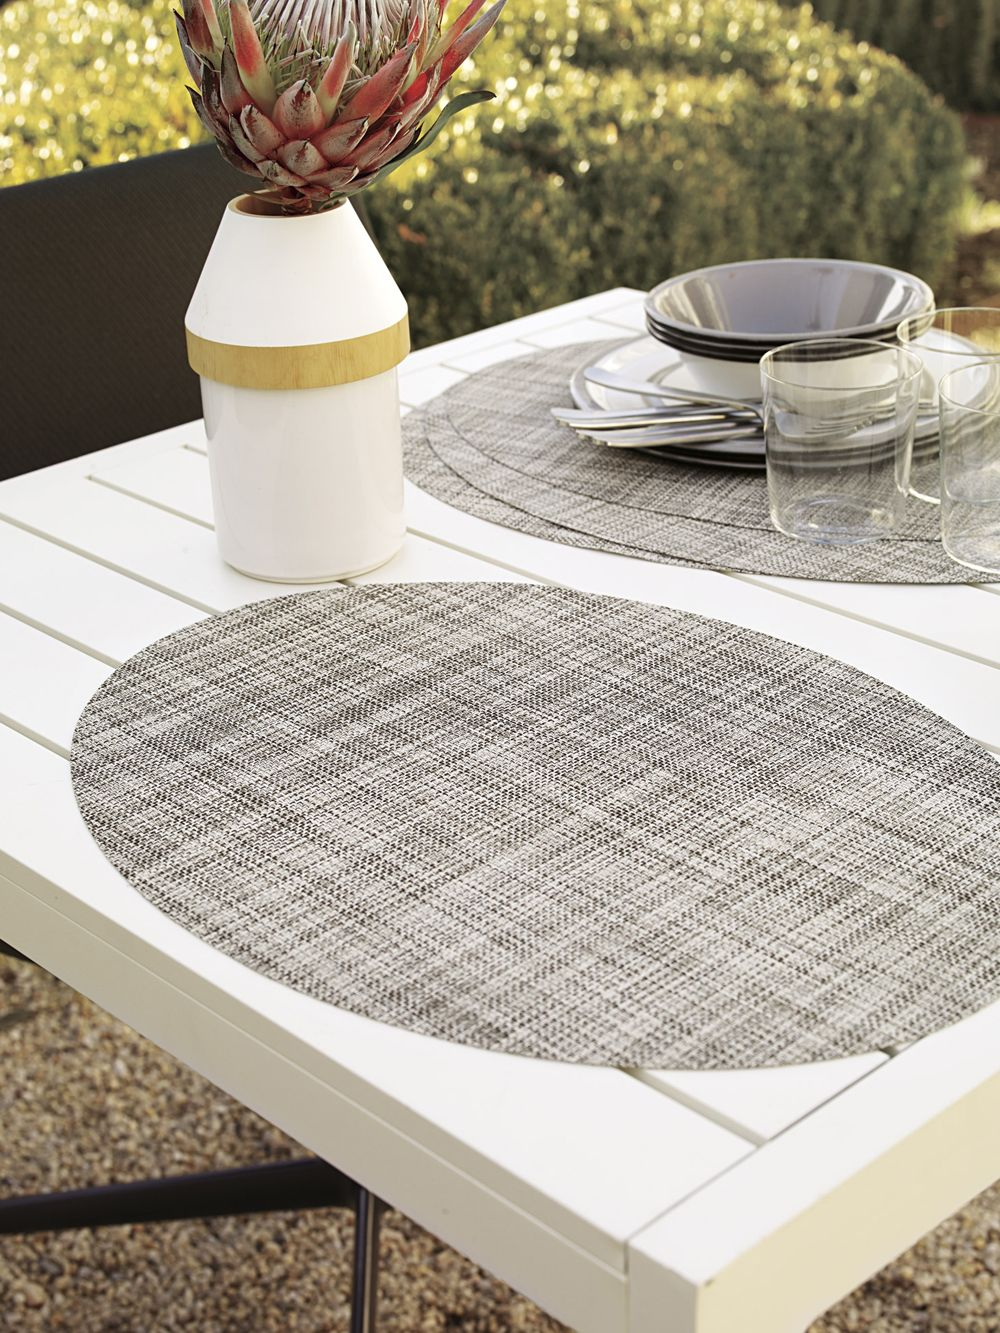 Chilewich Mini Basketweave Oval Placemats Design Within Reach Modern Tableware Placemats Chilewich